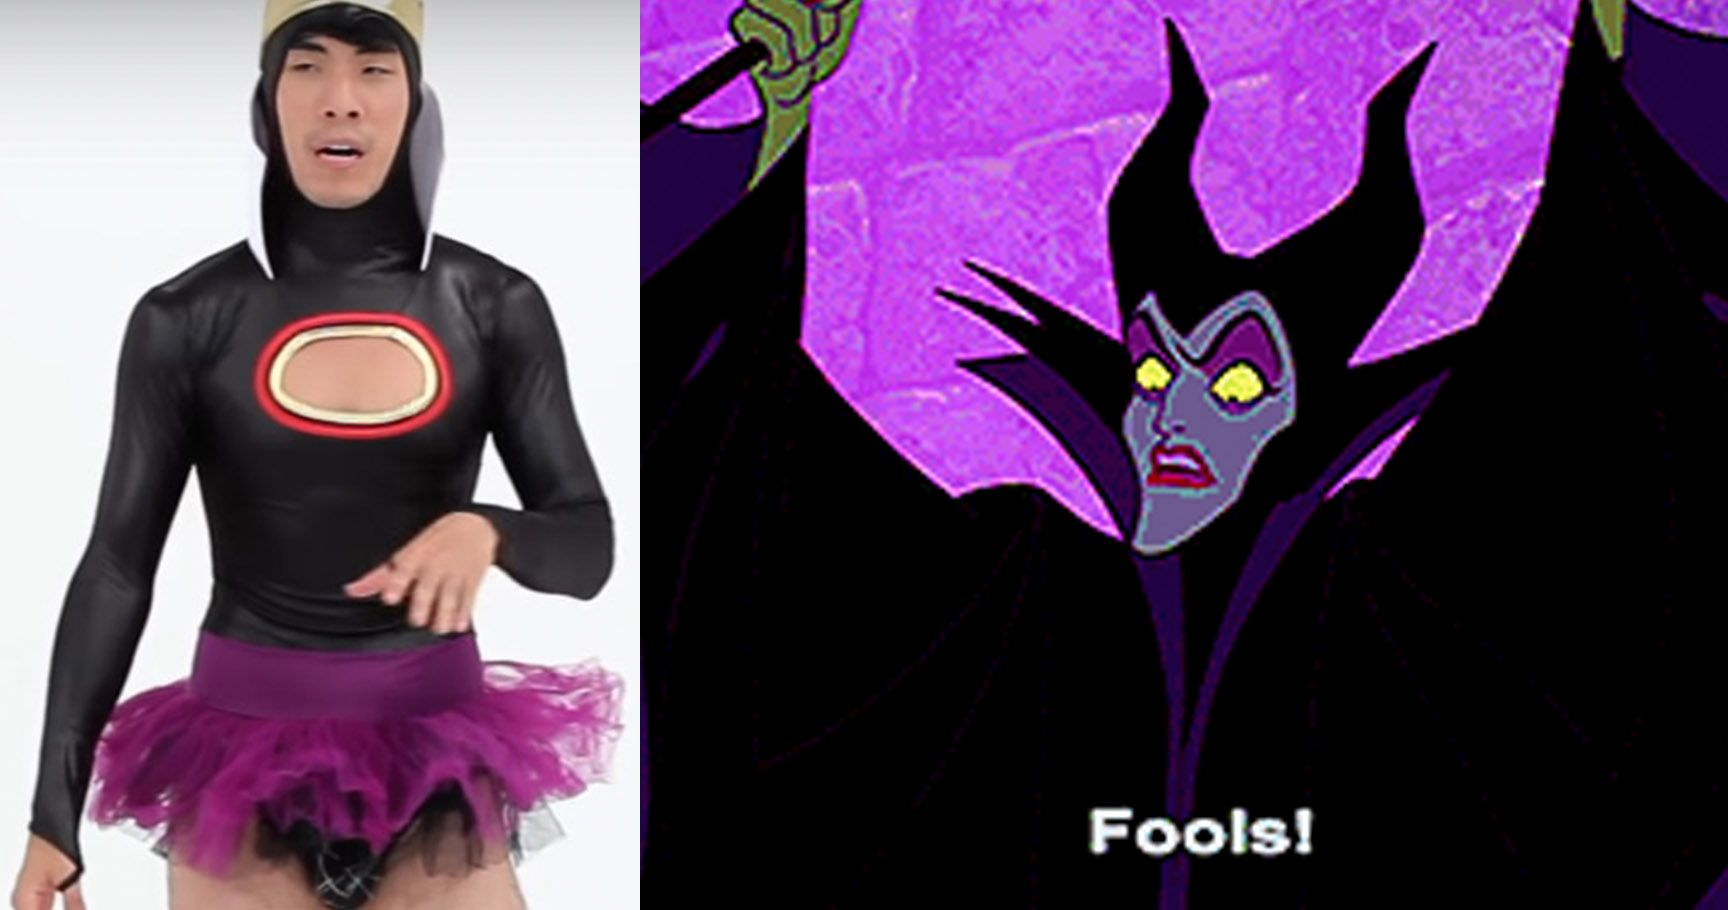 15 Totally Inappropriate Disney Costumes That Will Ruin Your Childhood